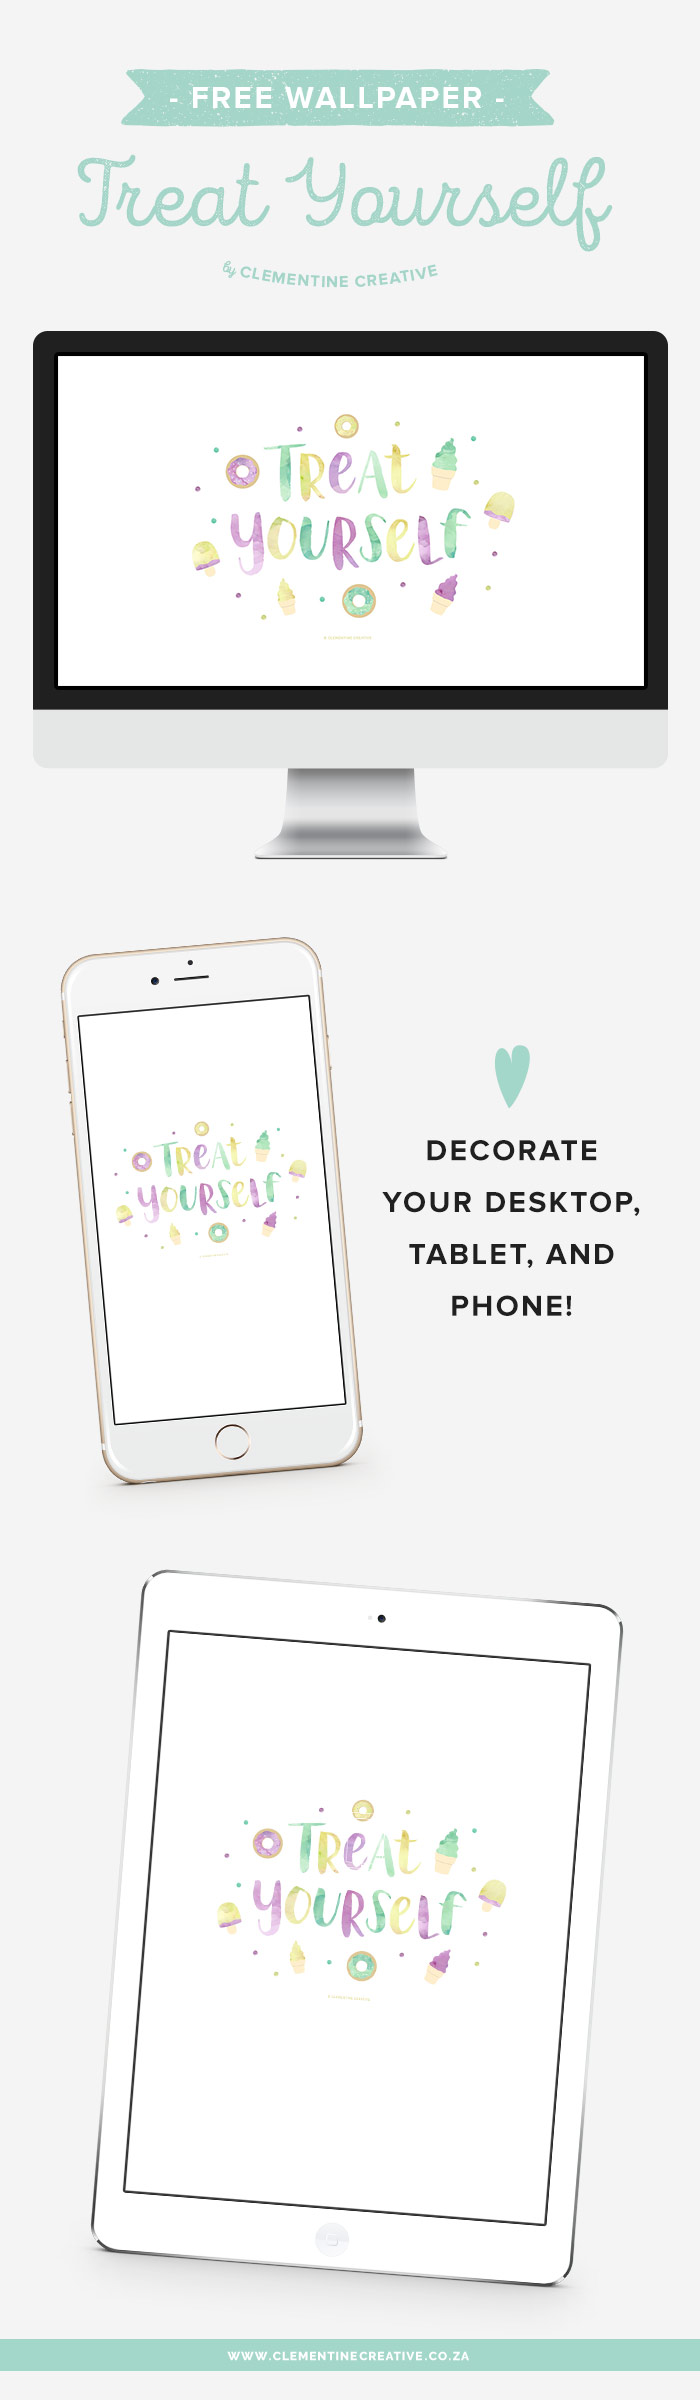 Treat yourself! Download these delicious wallpapers for your desktop, ipad and phone. You'll love this yummy wallpaper with hand lettered text and watercolour sweets.